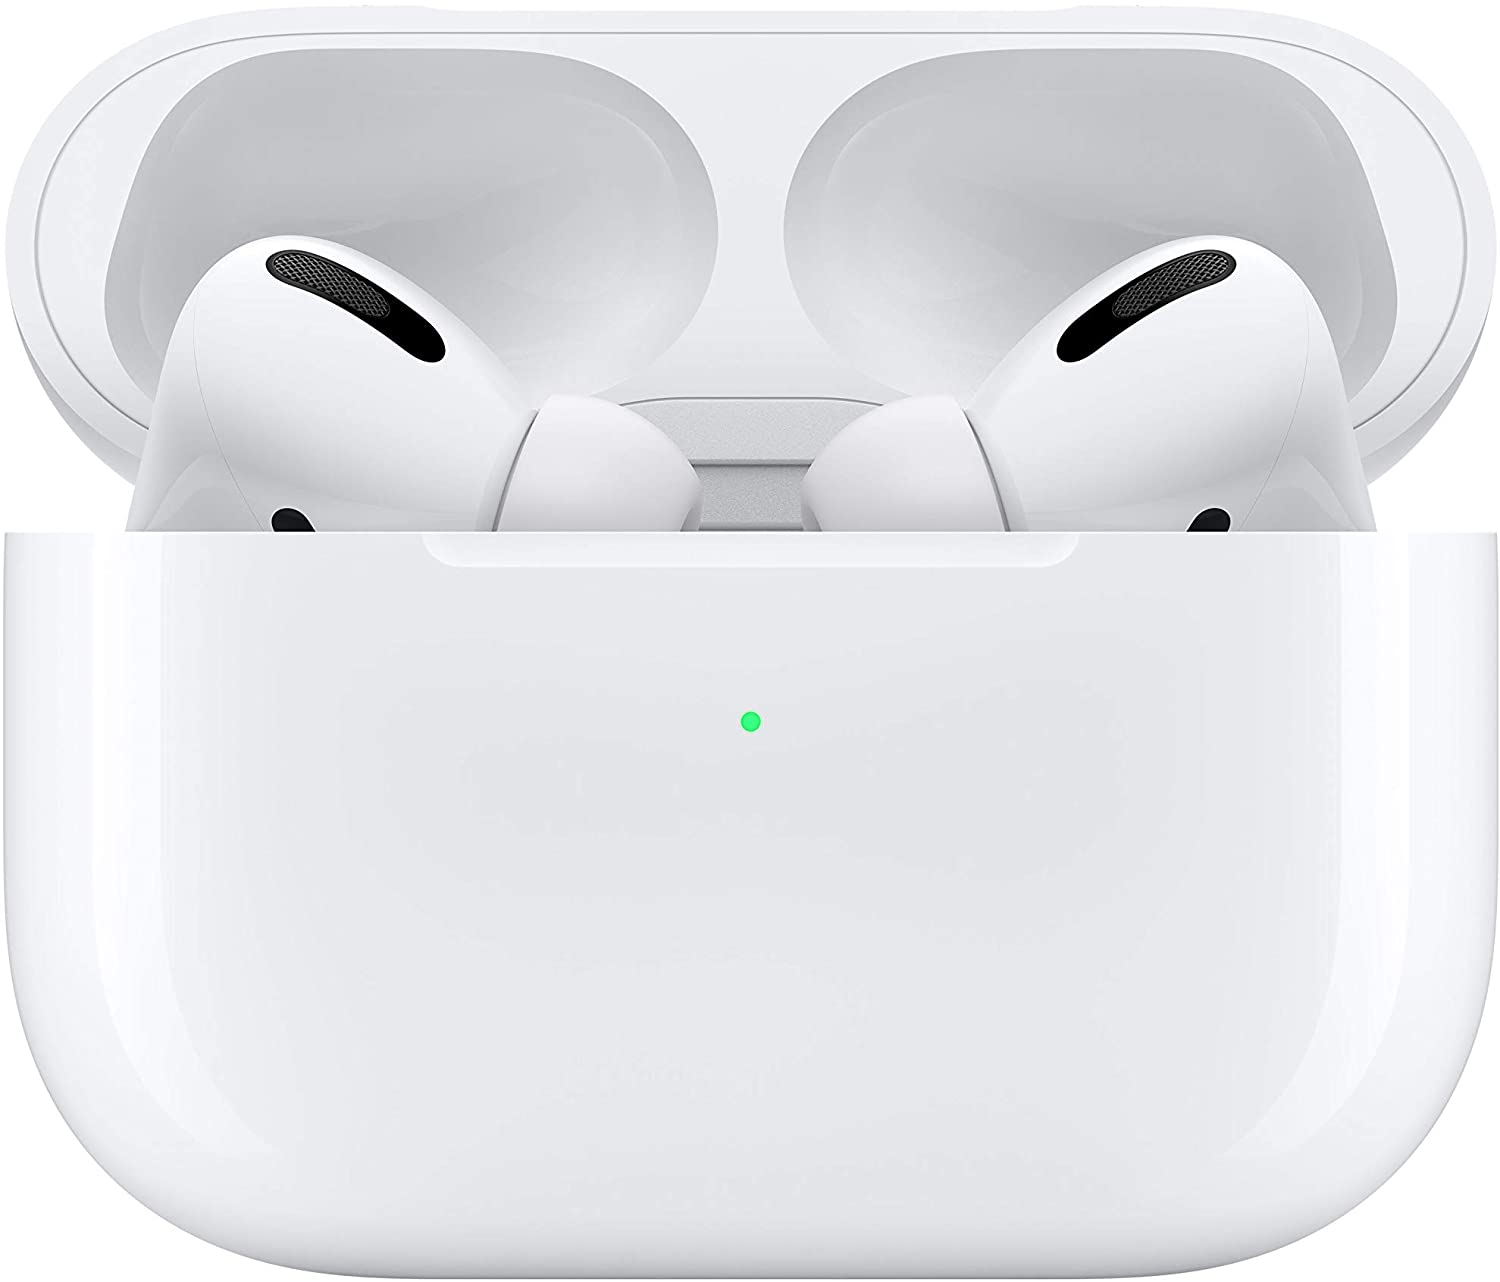 The Best Deals On Your Favorite Apple Products